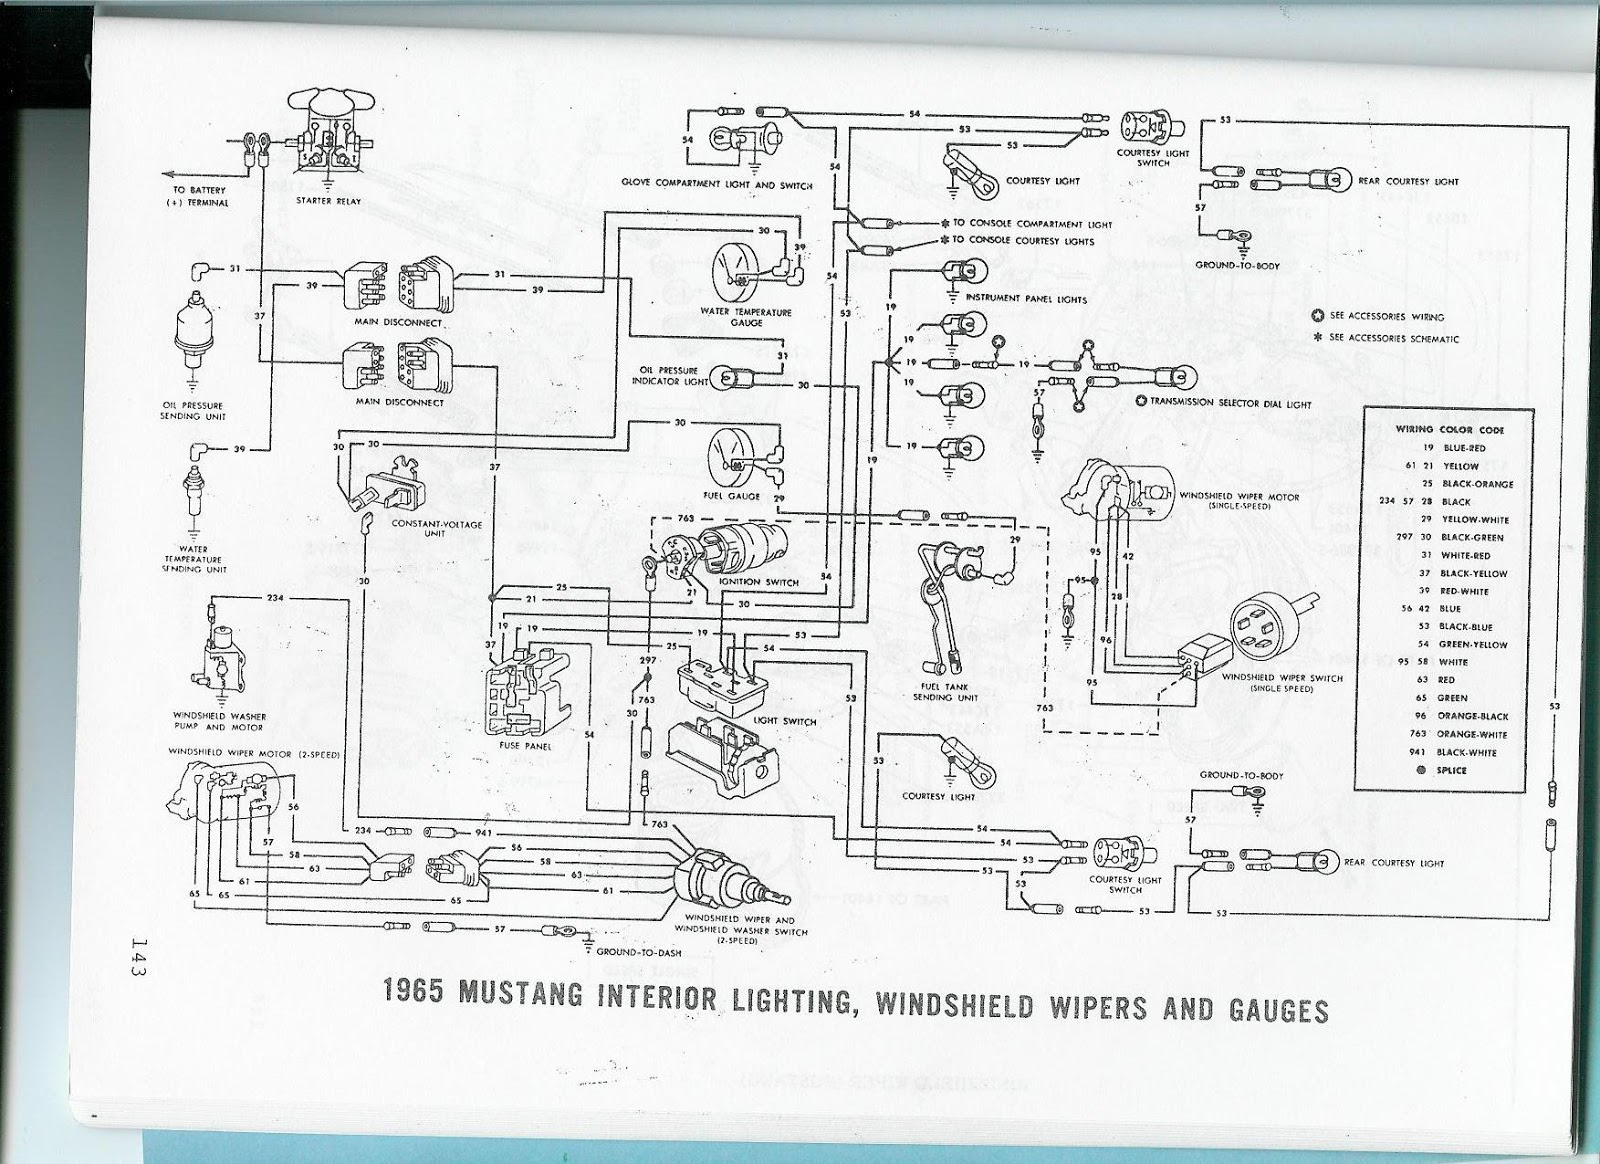 the care and feeding of ponies 1965 mustang wiring diagrams rh thecareandfeedingofponies blogspot com 65 mustang alternator wiring diagram 65 mustang engine wiring diagram